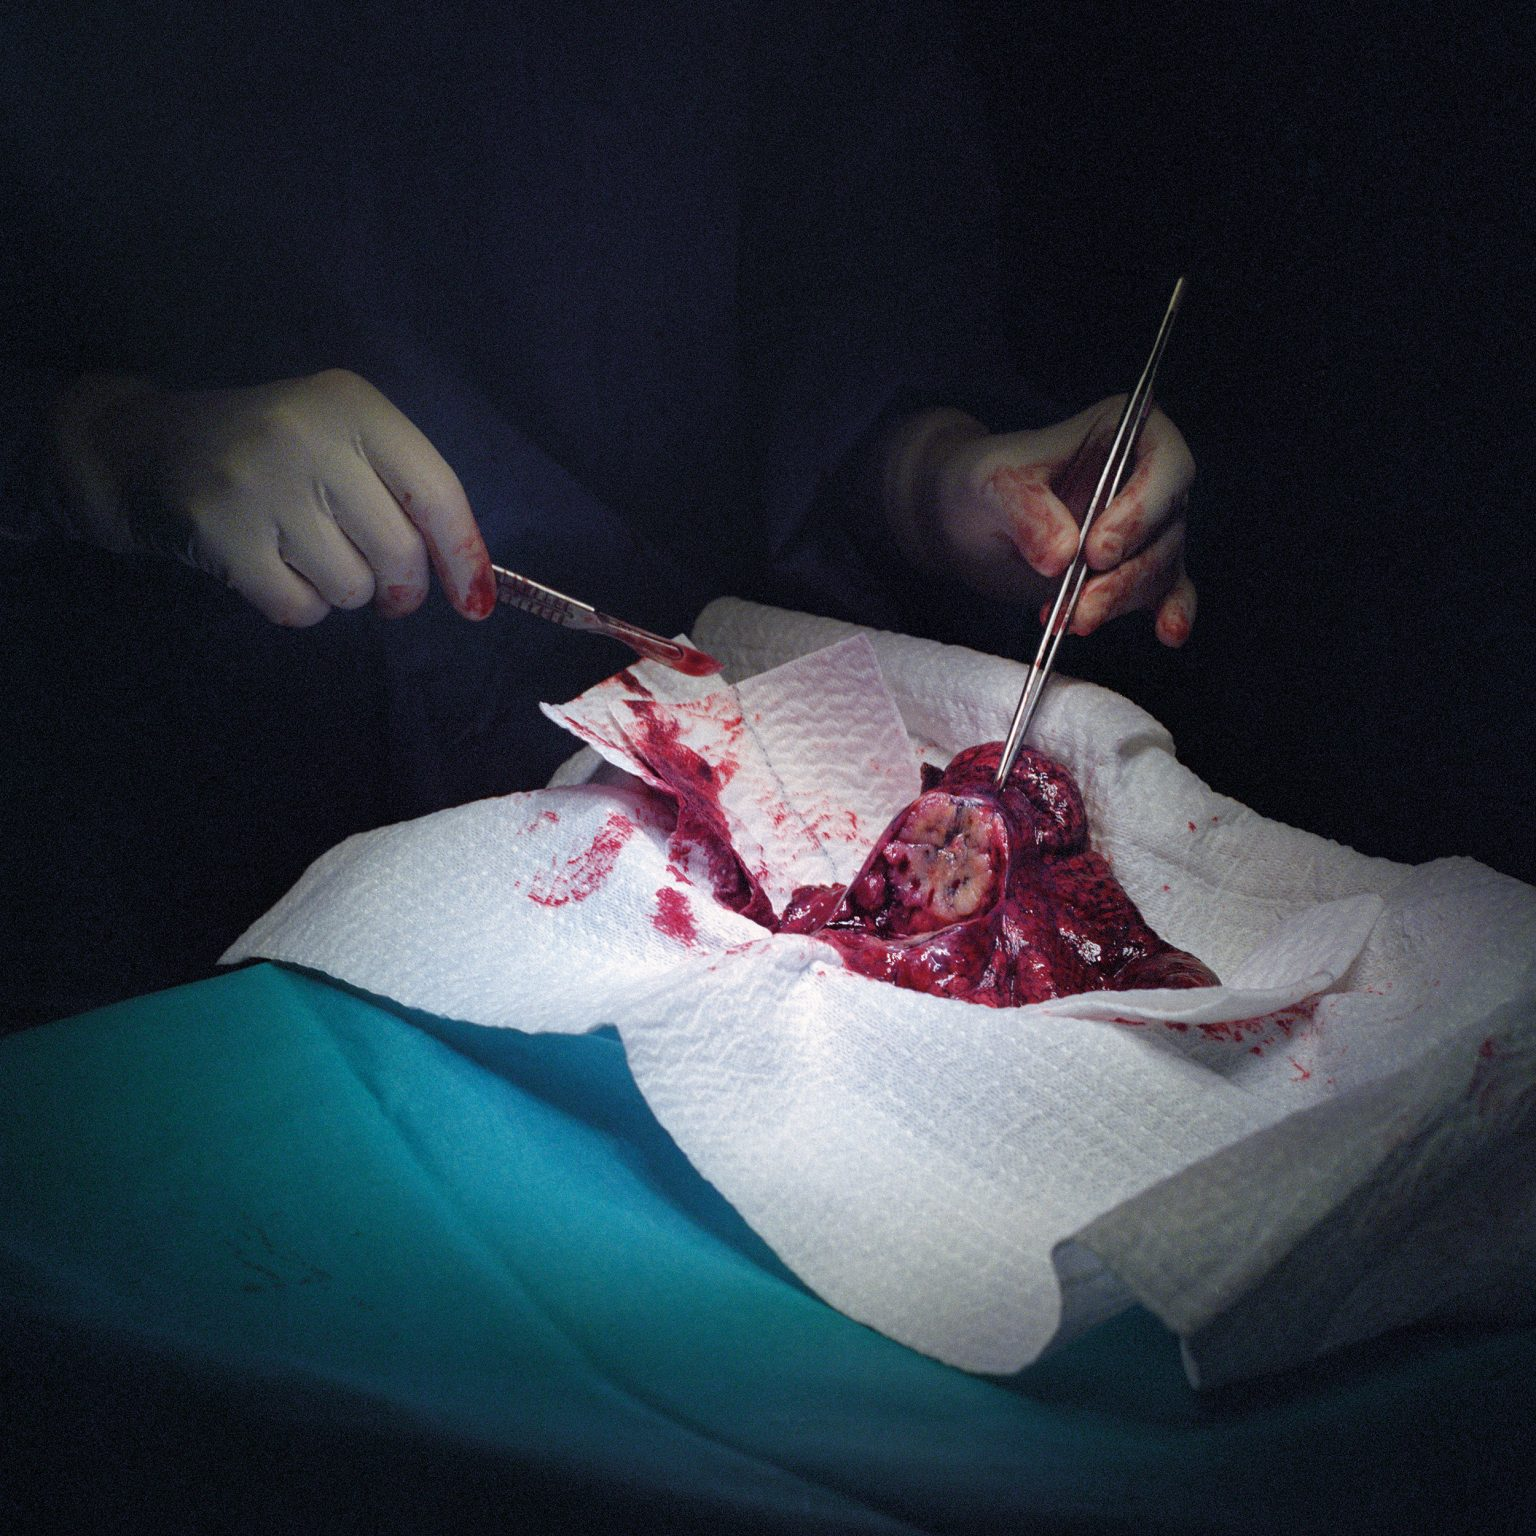 Milan, Italy. Surgeon Giulia Veronesi dissecting a lung cancer after performing a 4 hours long surgery on a male smoker at the European Institute of Oncology. Survival rates for lung cancer remain very low.